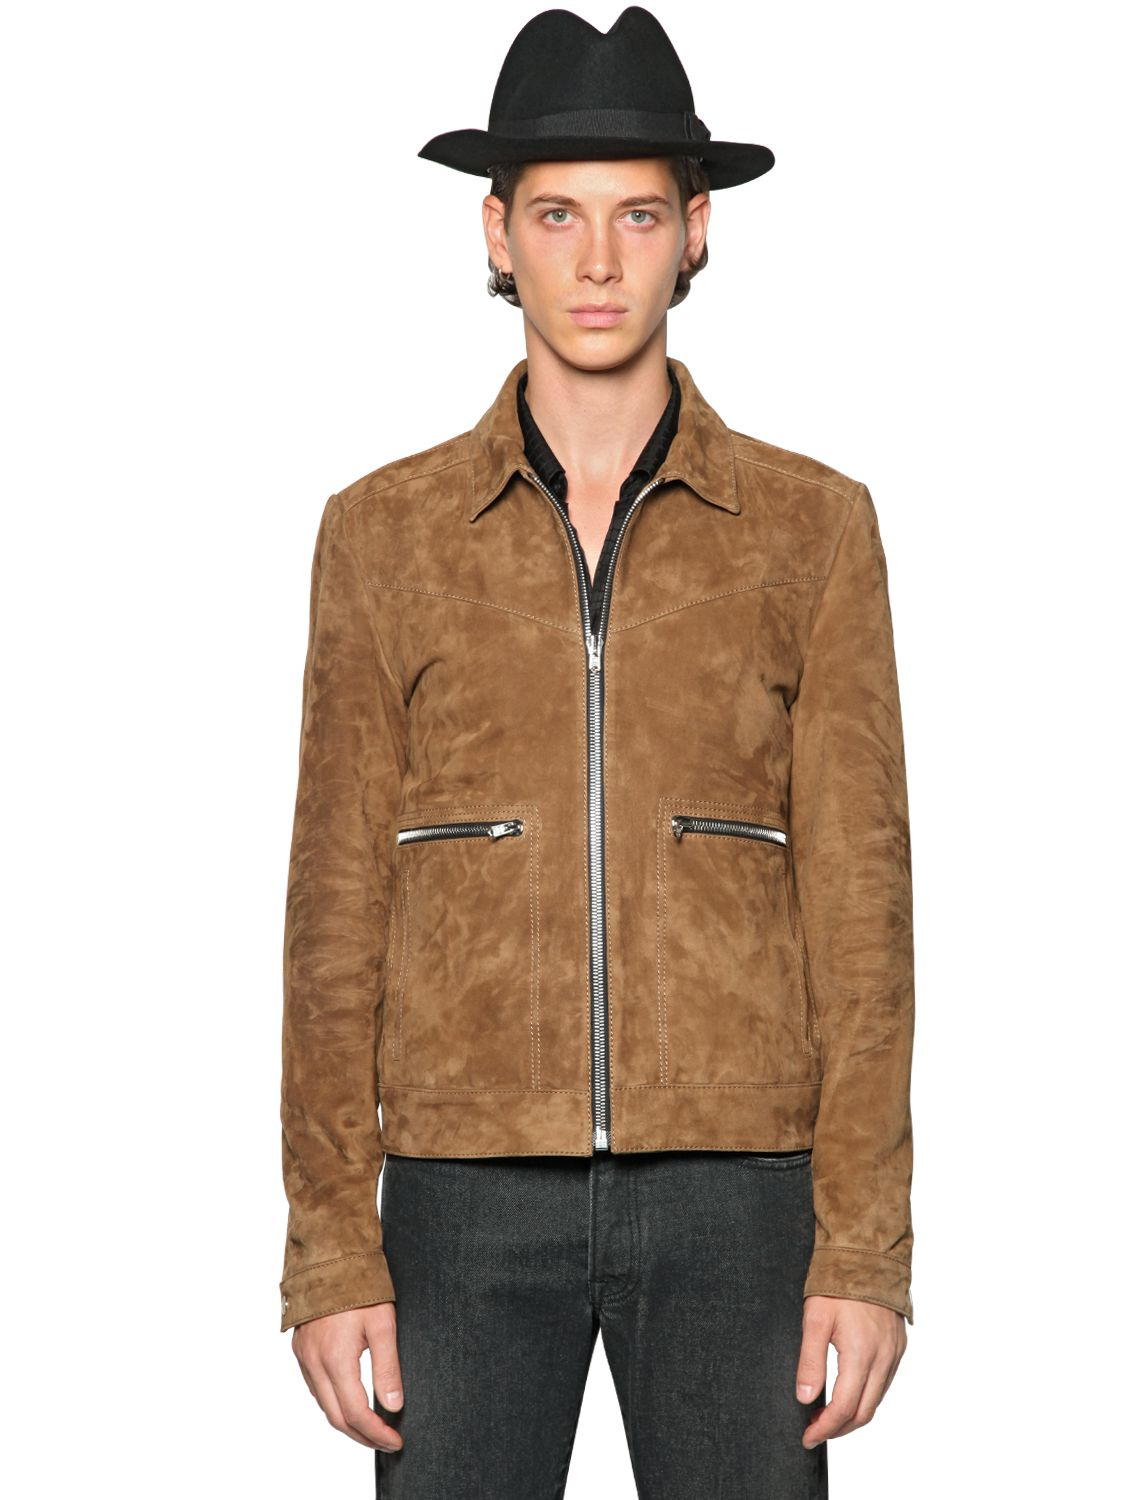 Men S Bomber Leather Jacket In Black Bristol in addition Black Leather Biker Jacket 683418 additionally Womens Memory Workshift moreover The Kooples Suede Jacket Camel as well 32691368164 html. on leather jacket boys size 12